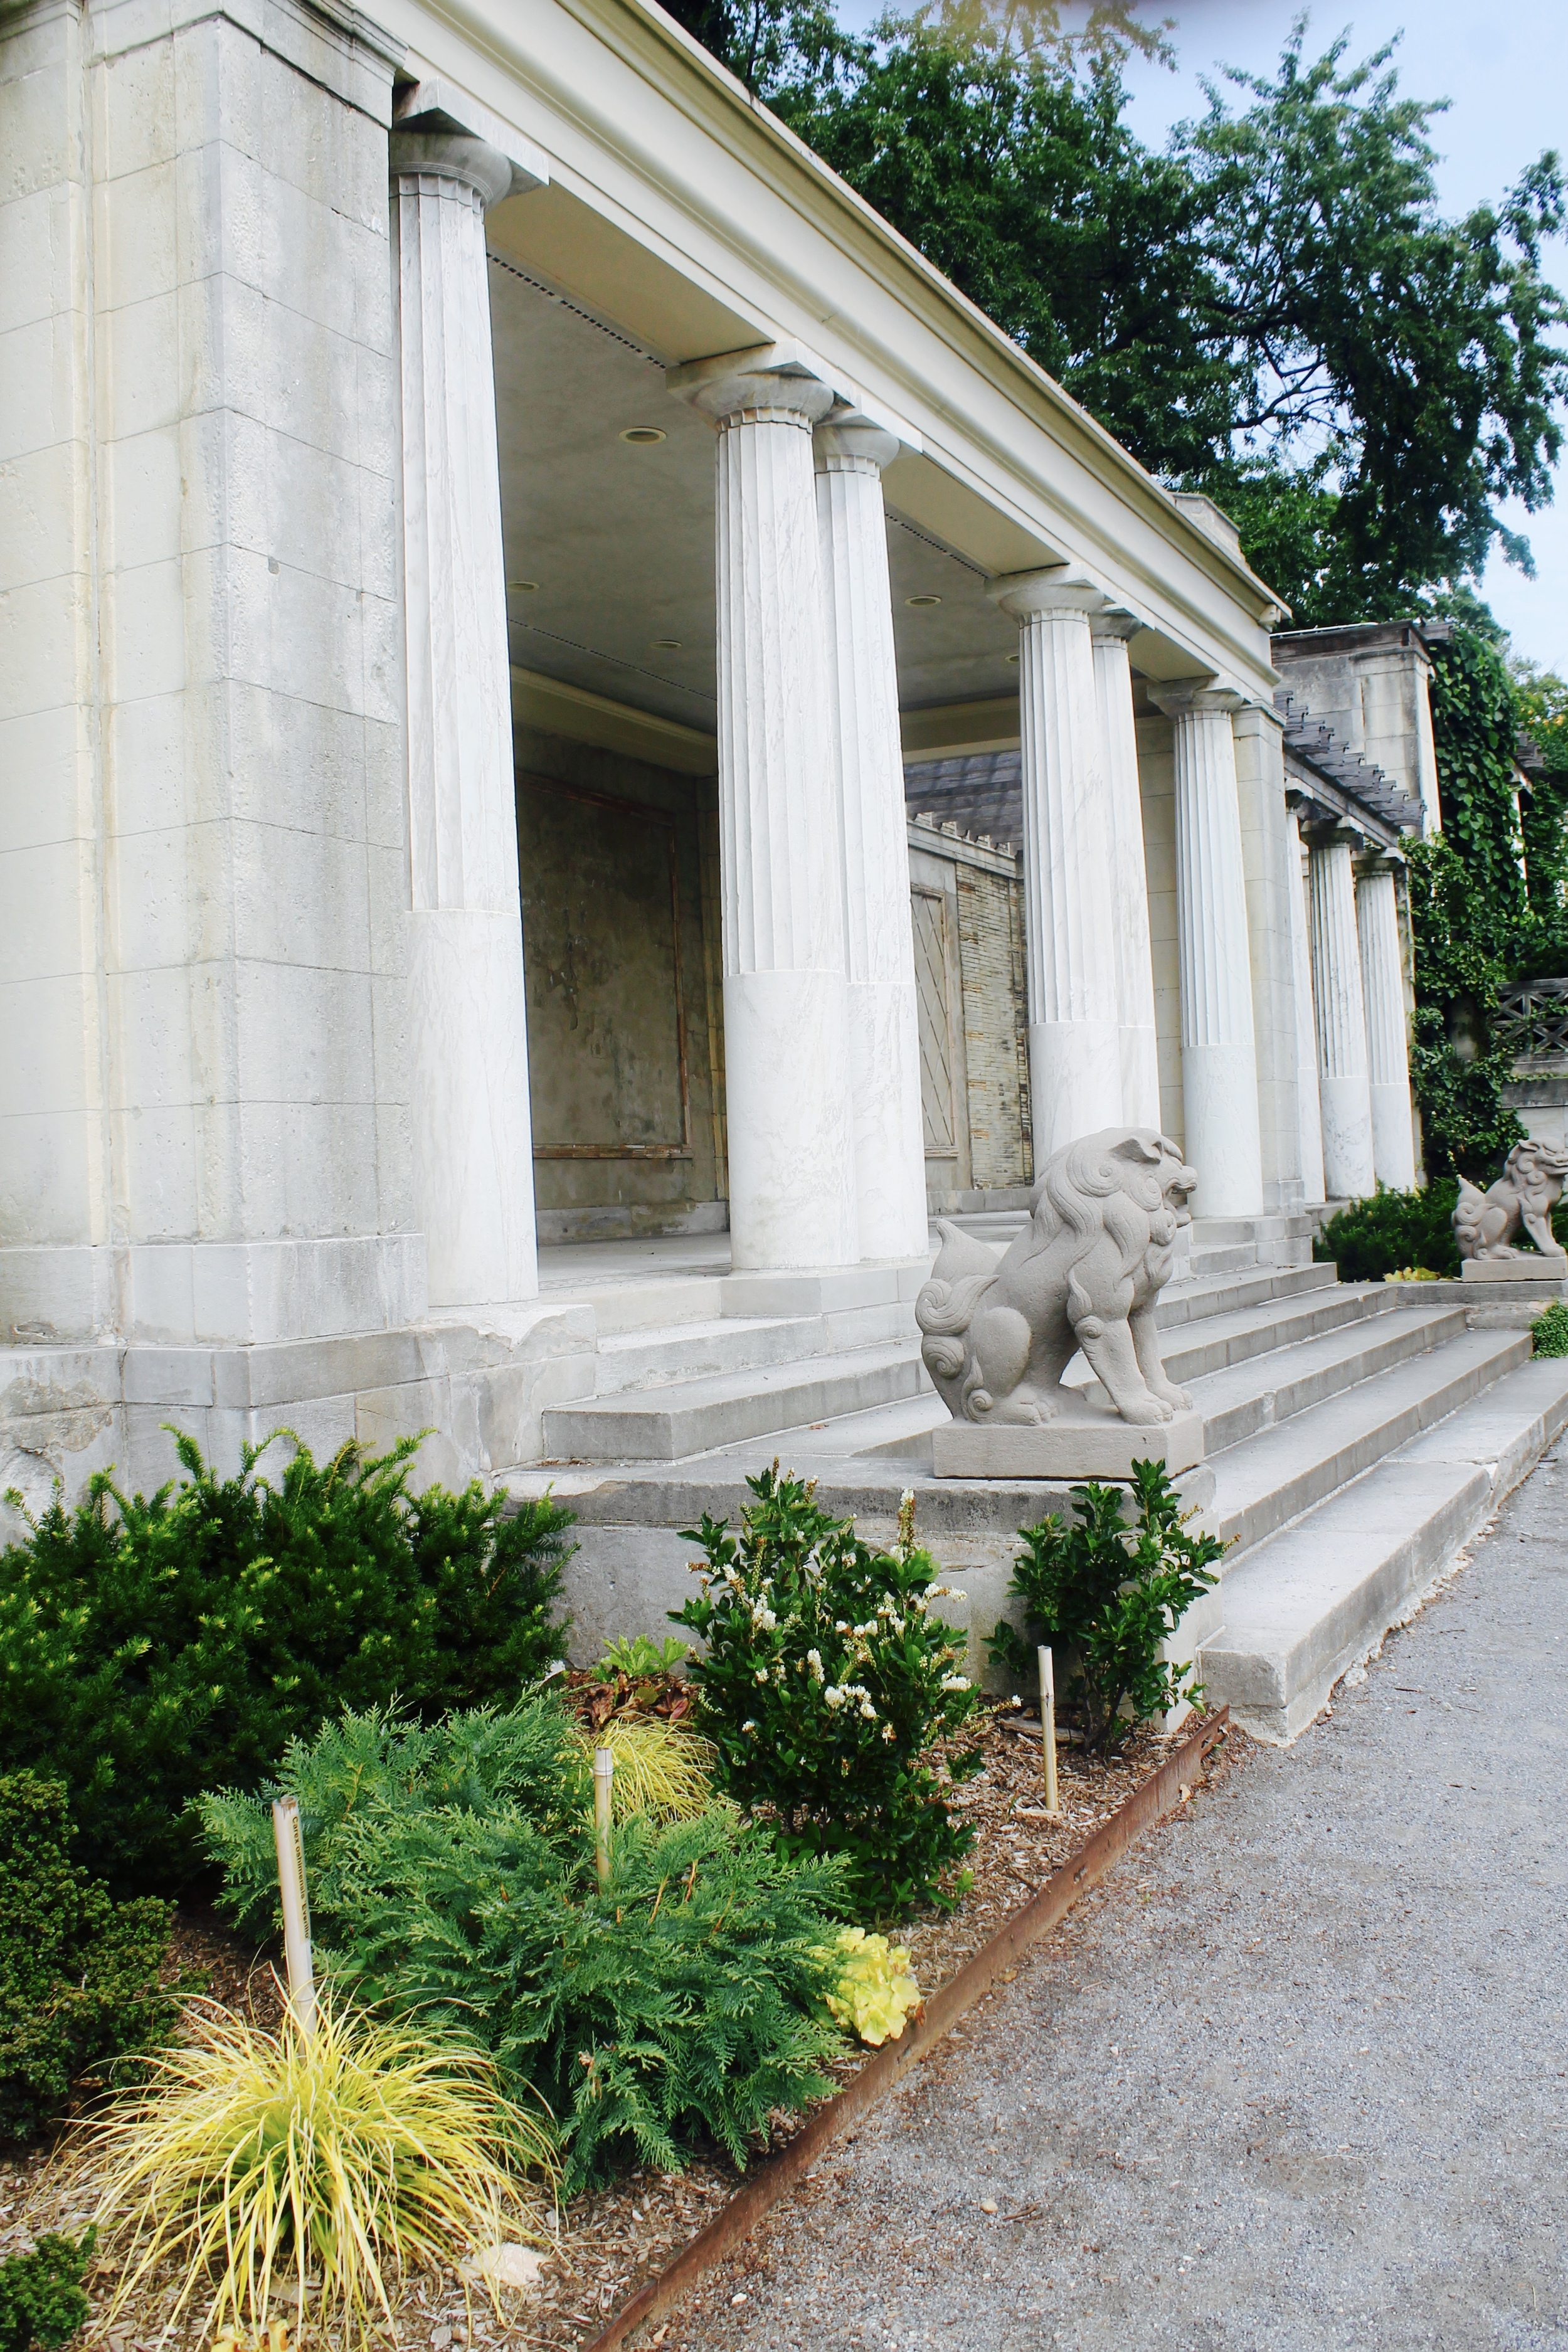 The Untermeyer Gardens: Hidden Gems of New York City - Photography property of Jessica Gordon Ryan/The Entertaining House